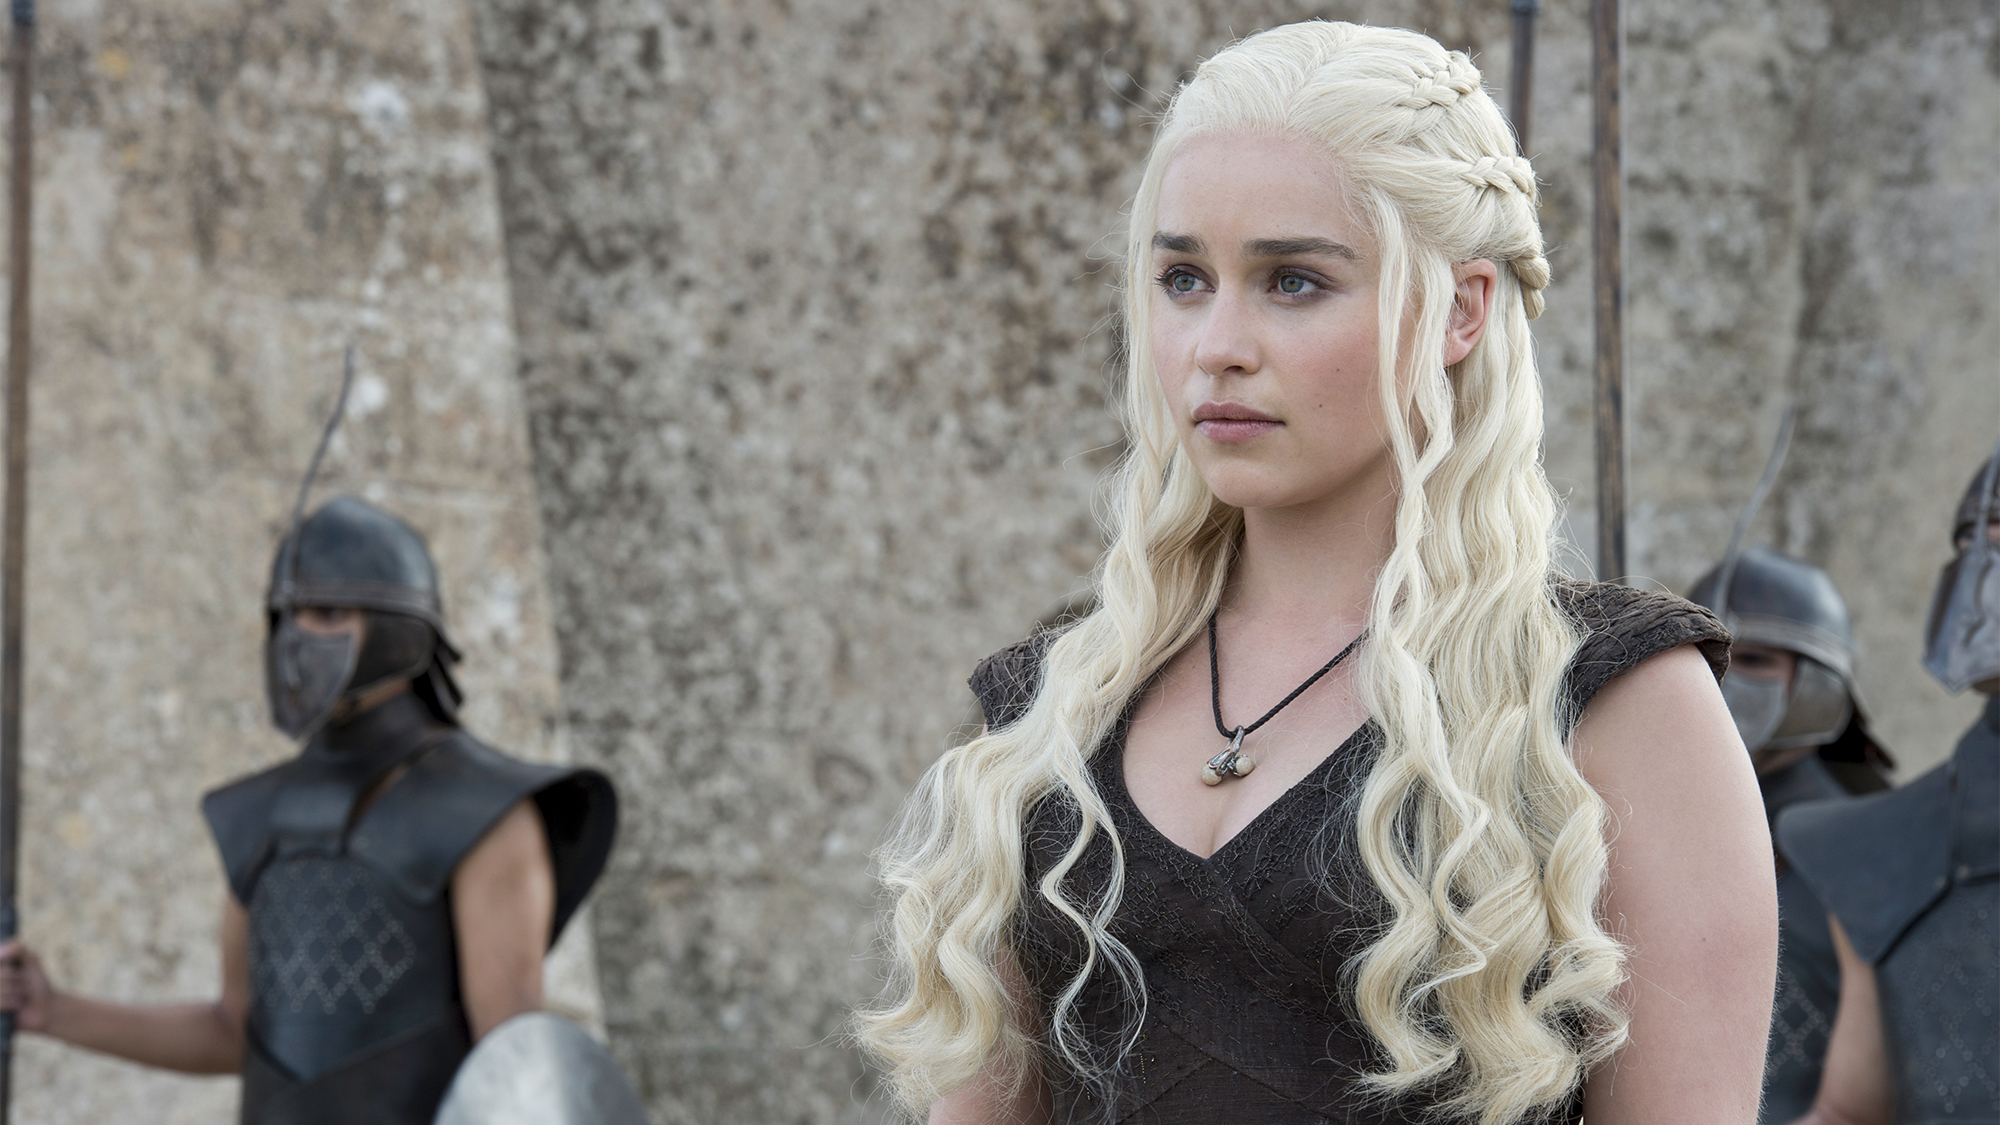 Daenerys' list of admirers is out of control in Game of Thrones season 7